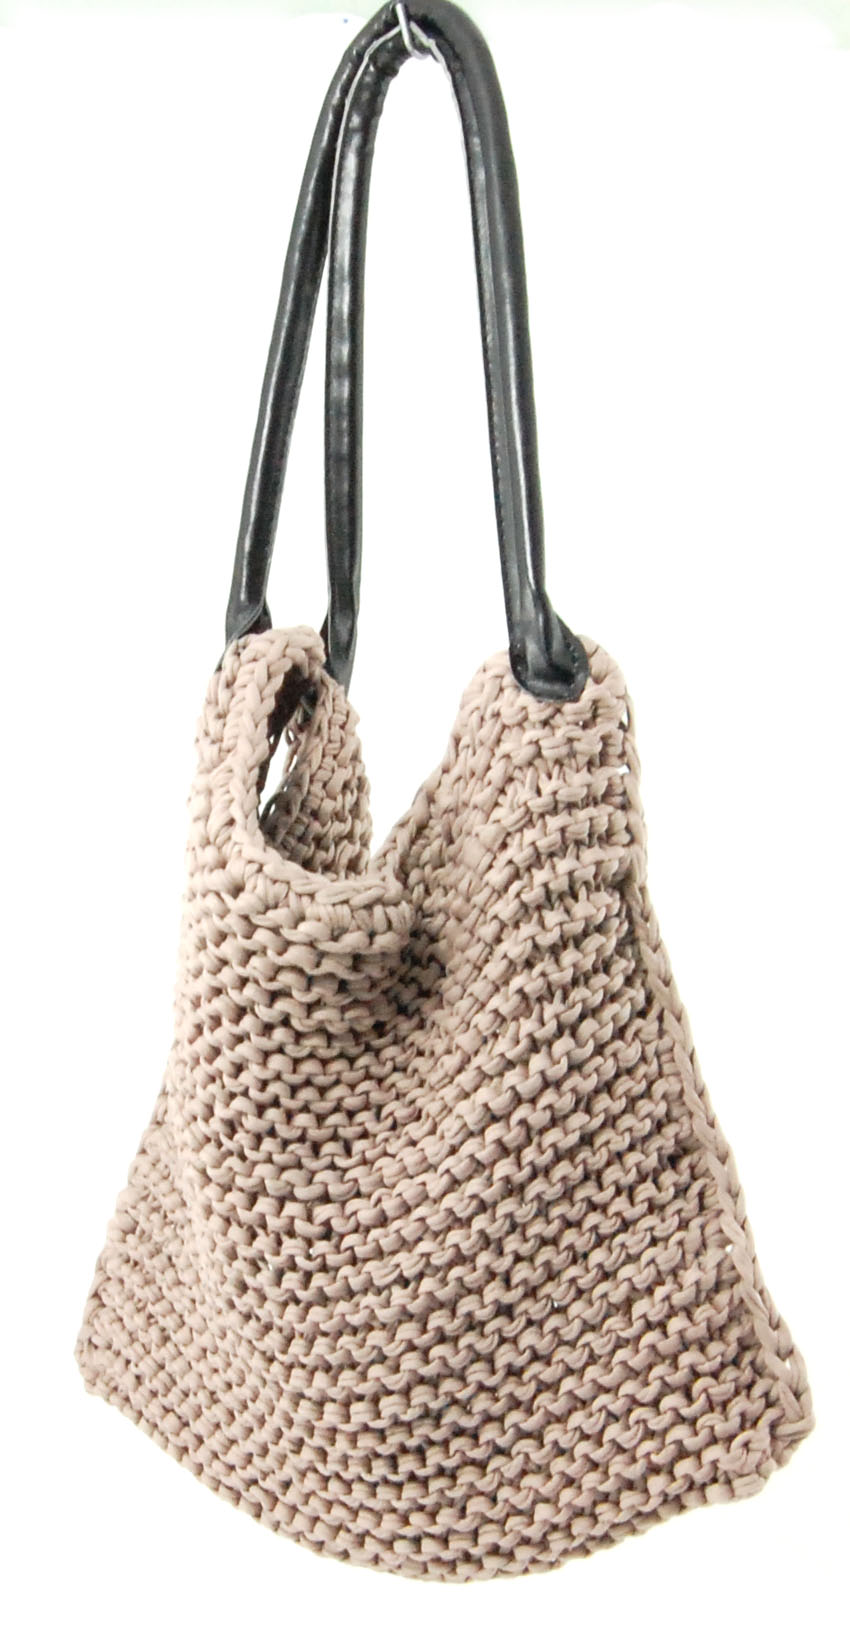 Knitted Tote Bag Pattern : Knitted bag tutorial LVLY